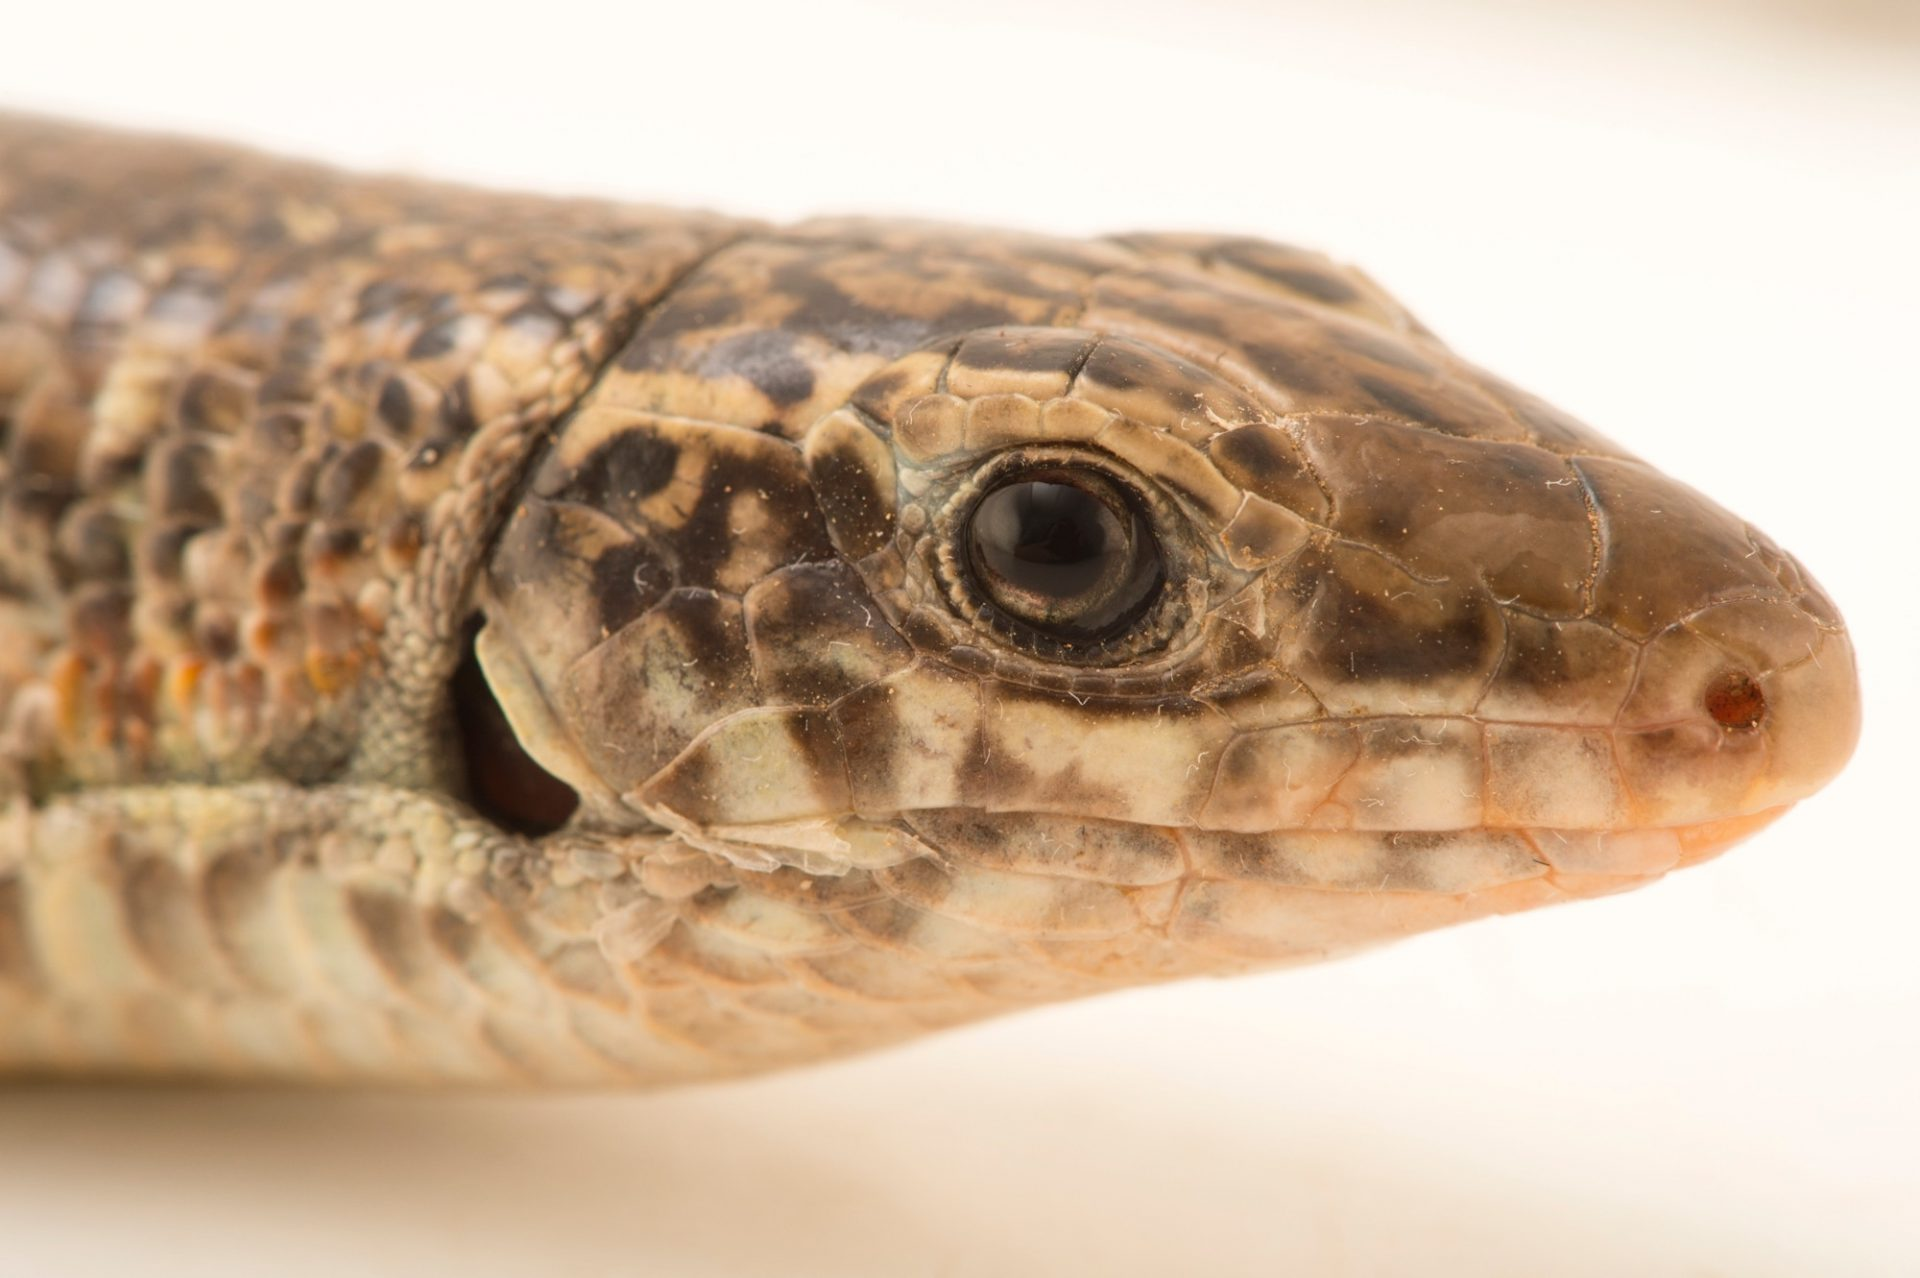 Photo: An ornate girdled lizard, Zonosaurus ornatus, at Tsimbazaza Zoo.